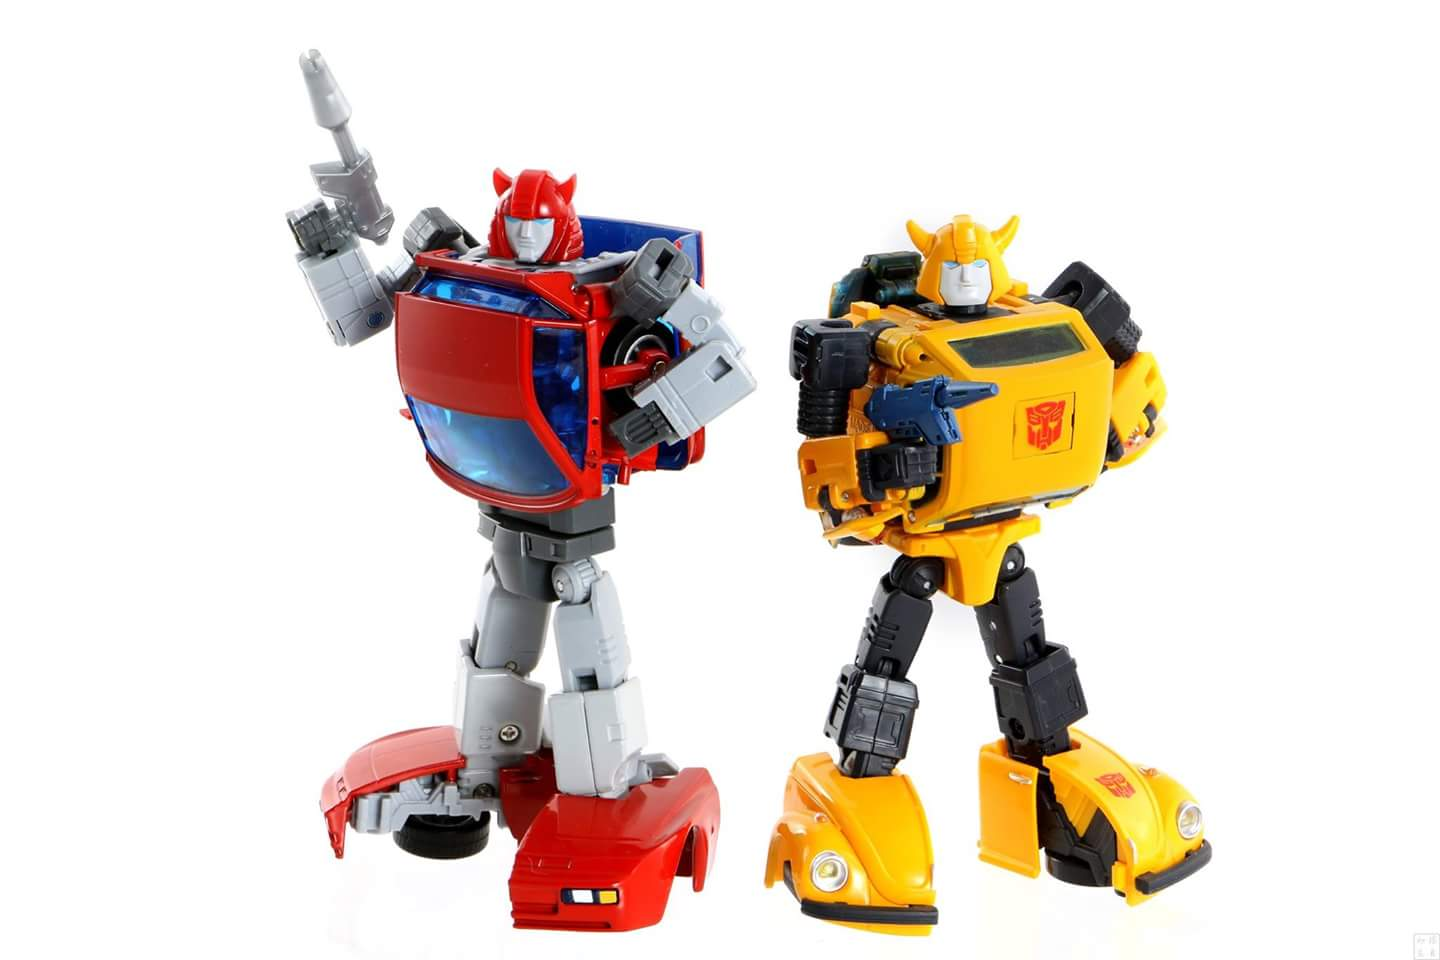 [ACE Collectables] Produit Tiers - Minibots MP - ACE-01 Tumbler (aka Cliffjumper/Matamore), ACE-02 Hiccups (aka Hubcap/Virevolto), ACE-03 Trident (aka Seaspray/Embruns) MyEArZuK